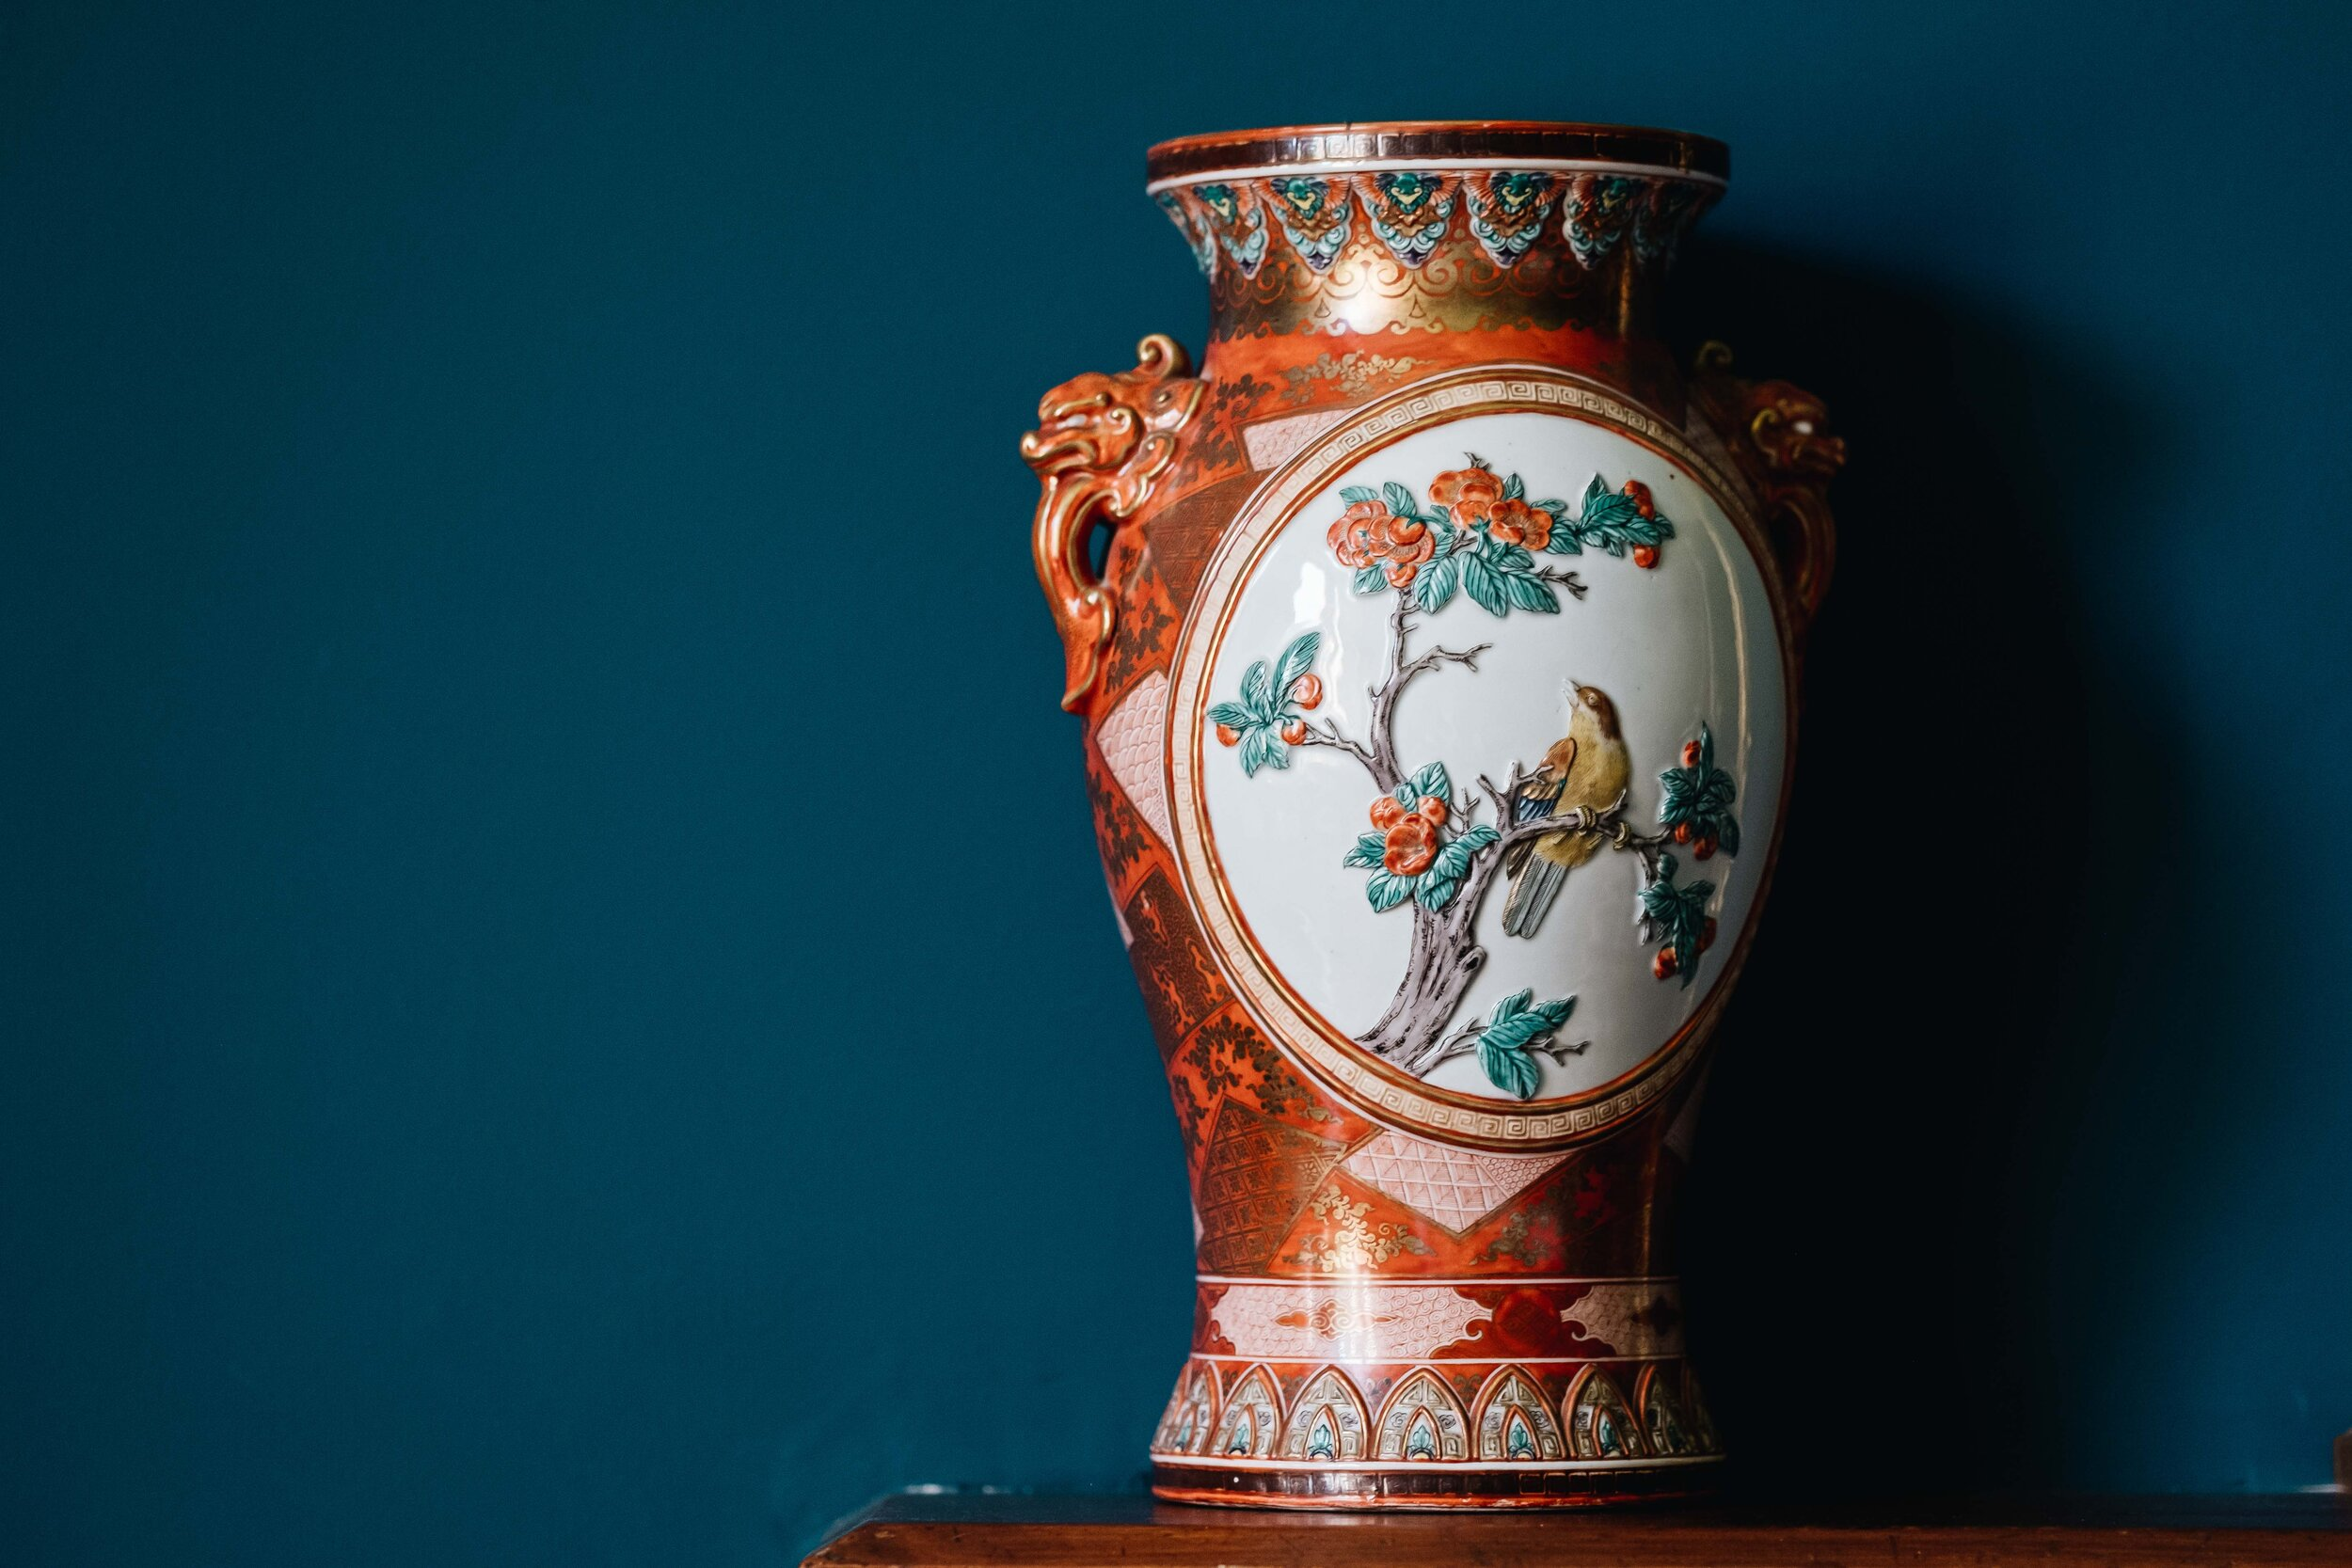 An ornate vase with bird sits on the mantle piece of the blue room in Cambo House.